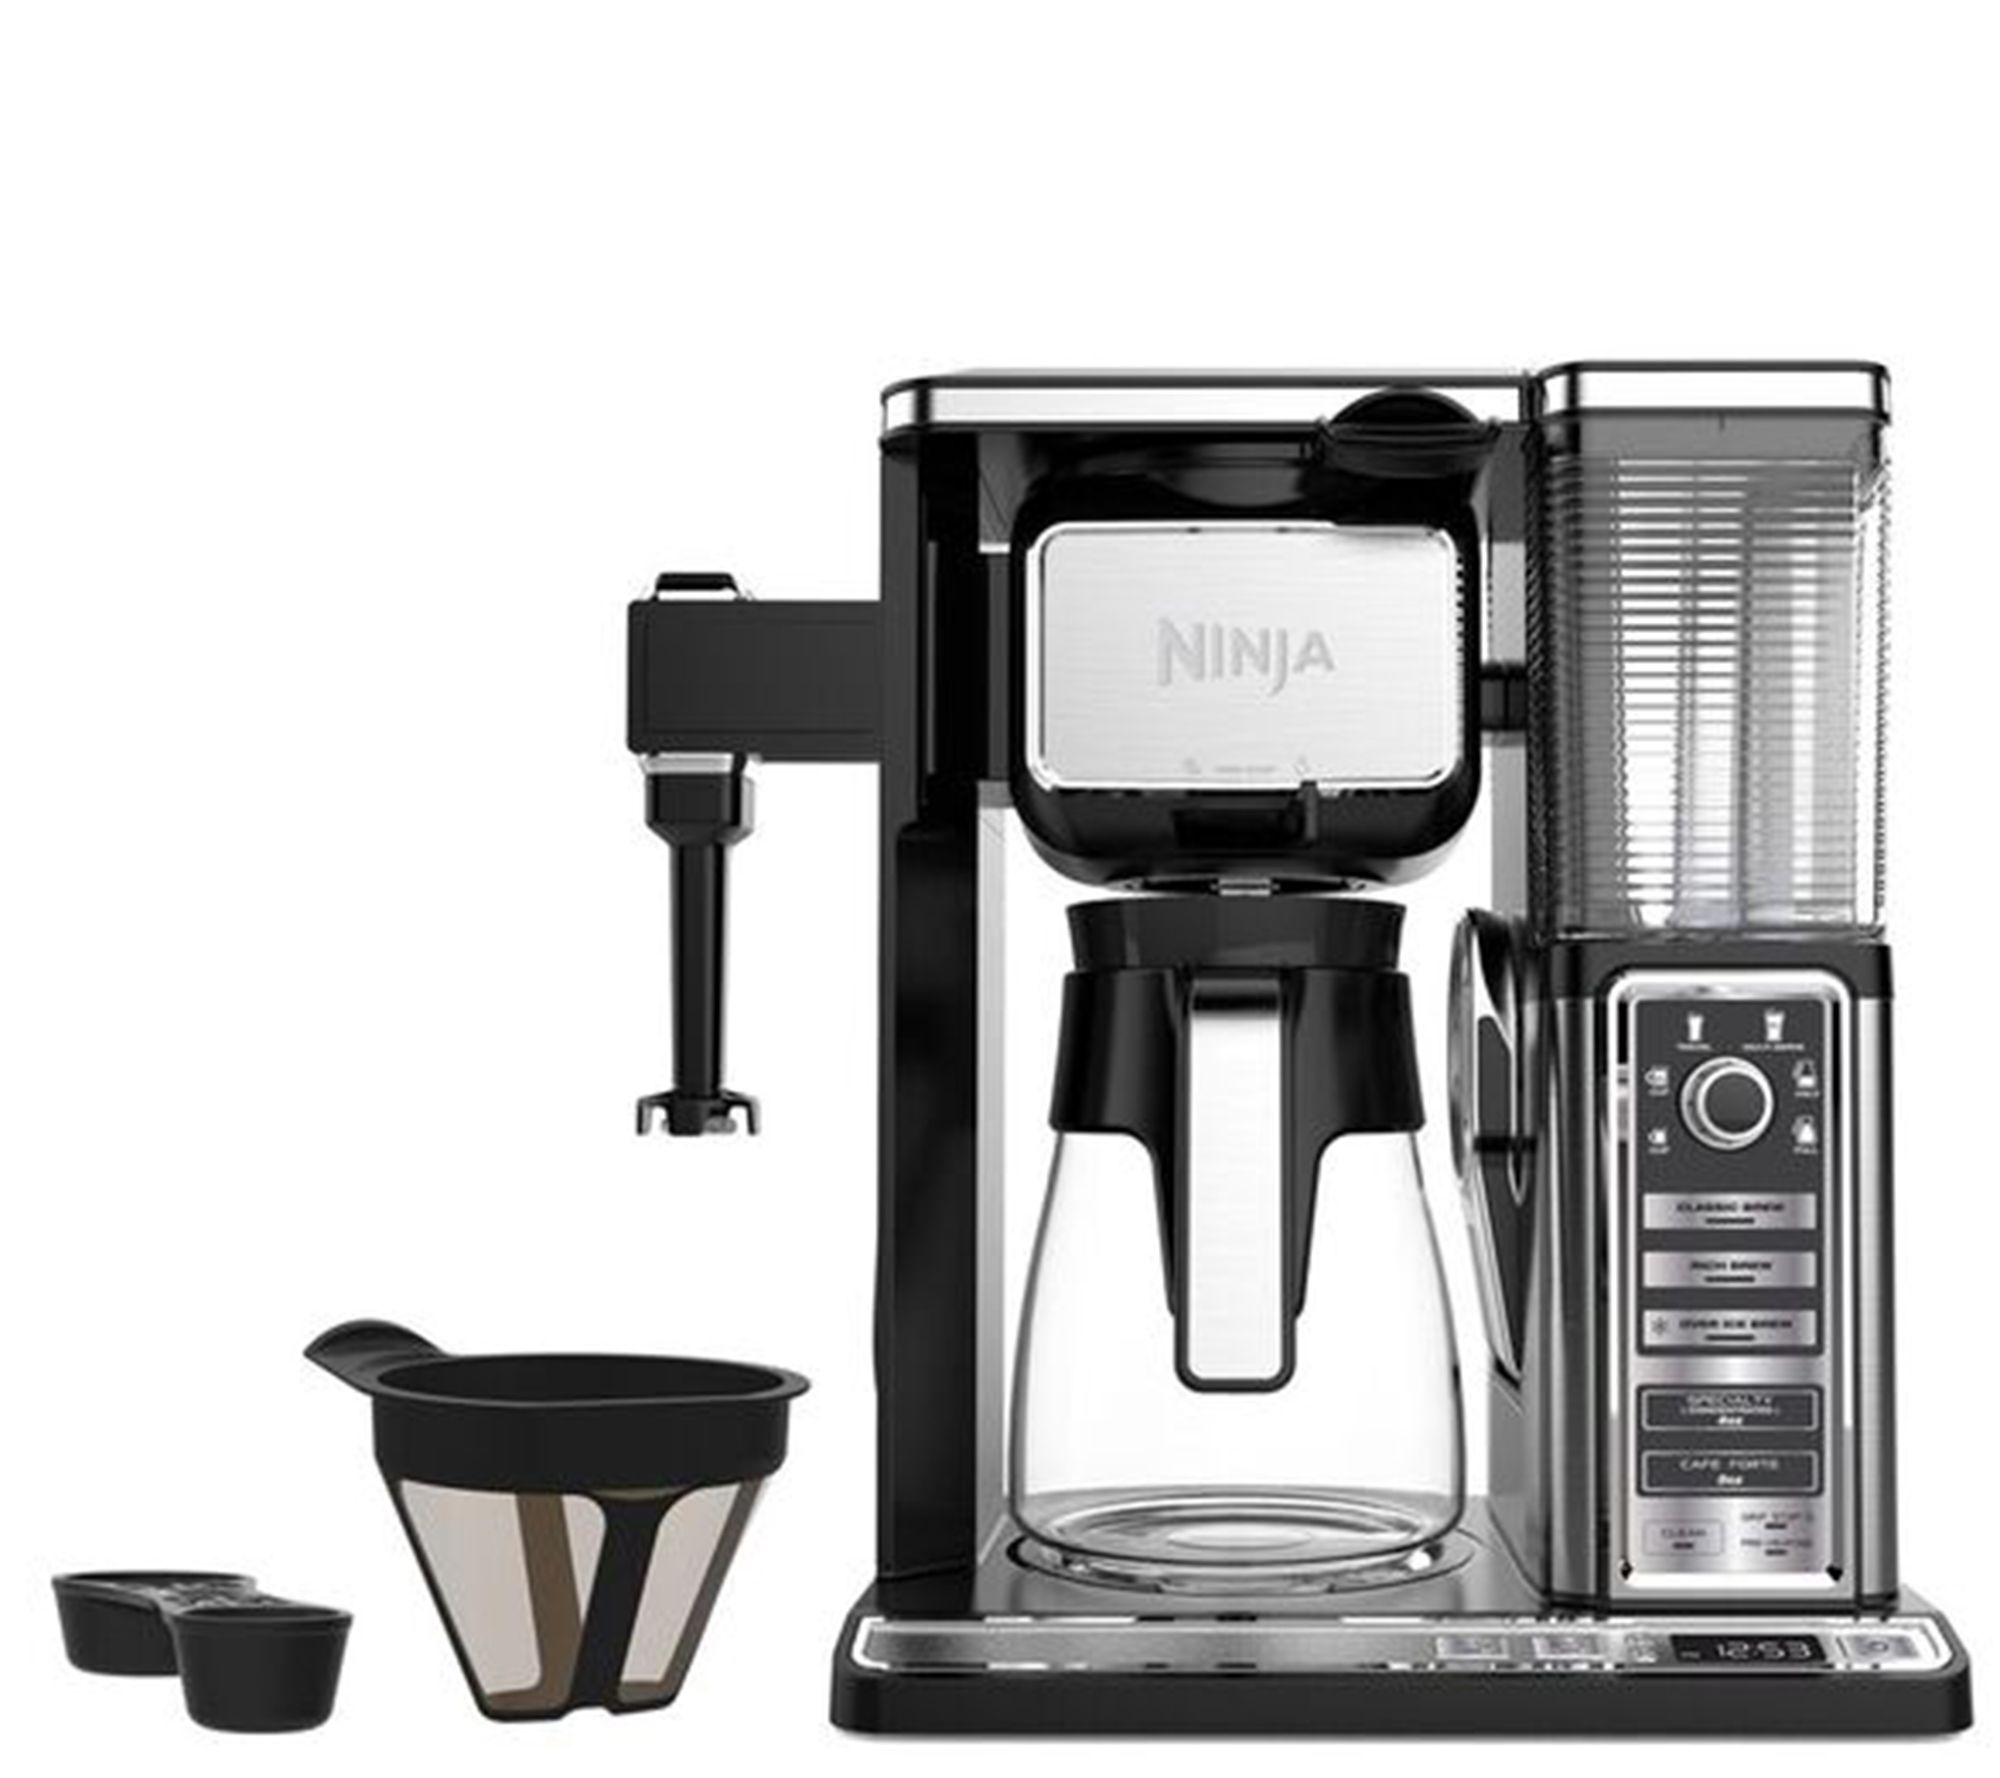 Uncategorized Qvc Kitchen Appliances kitchen appliances qvc com ninja coffee bar with glass carafe and built infrother k305814